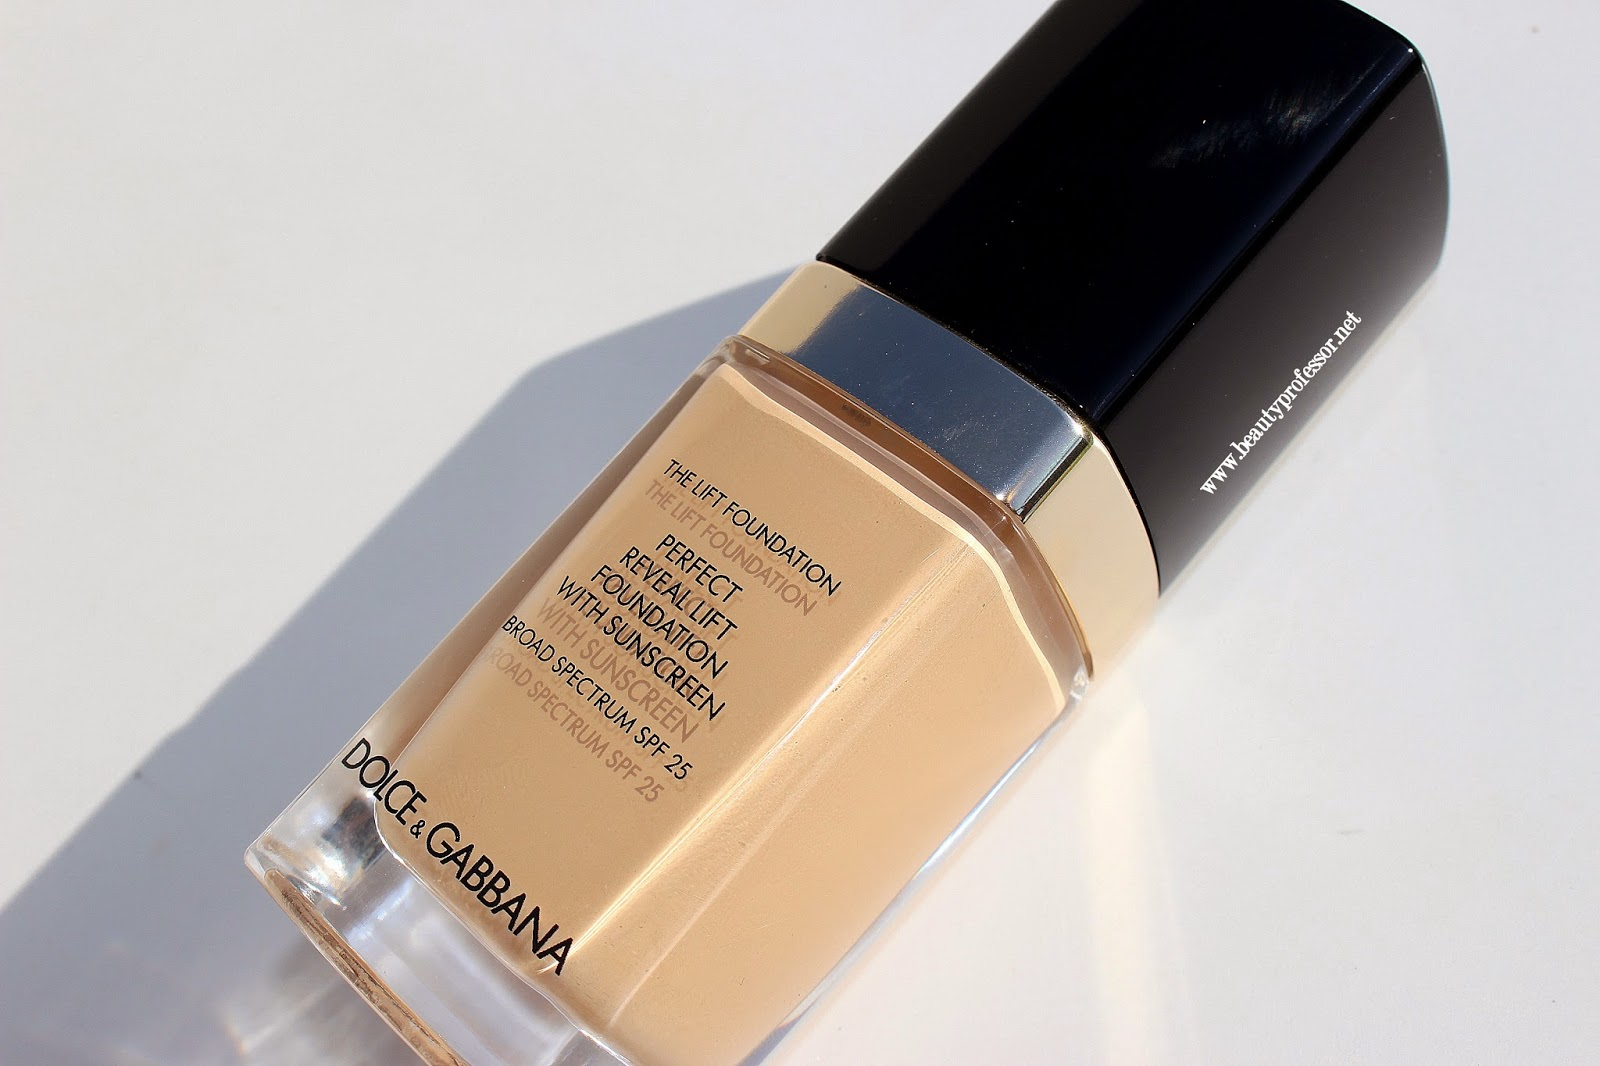 dolce and gabbana perfect reveal lift foundation swatches